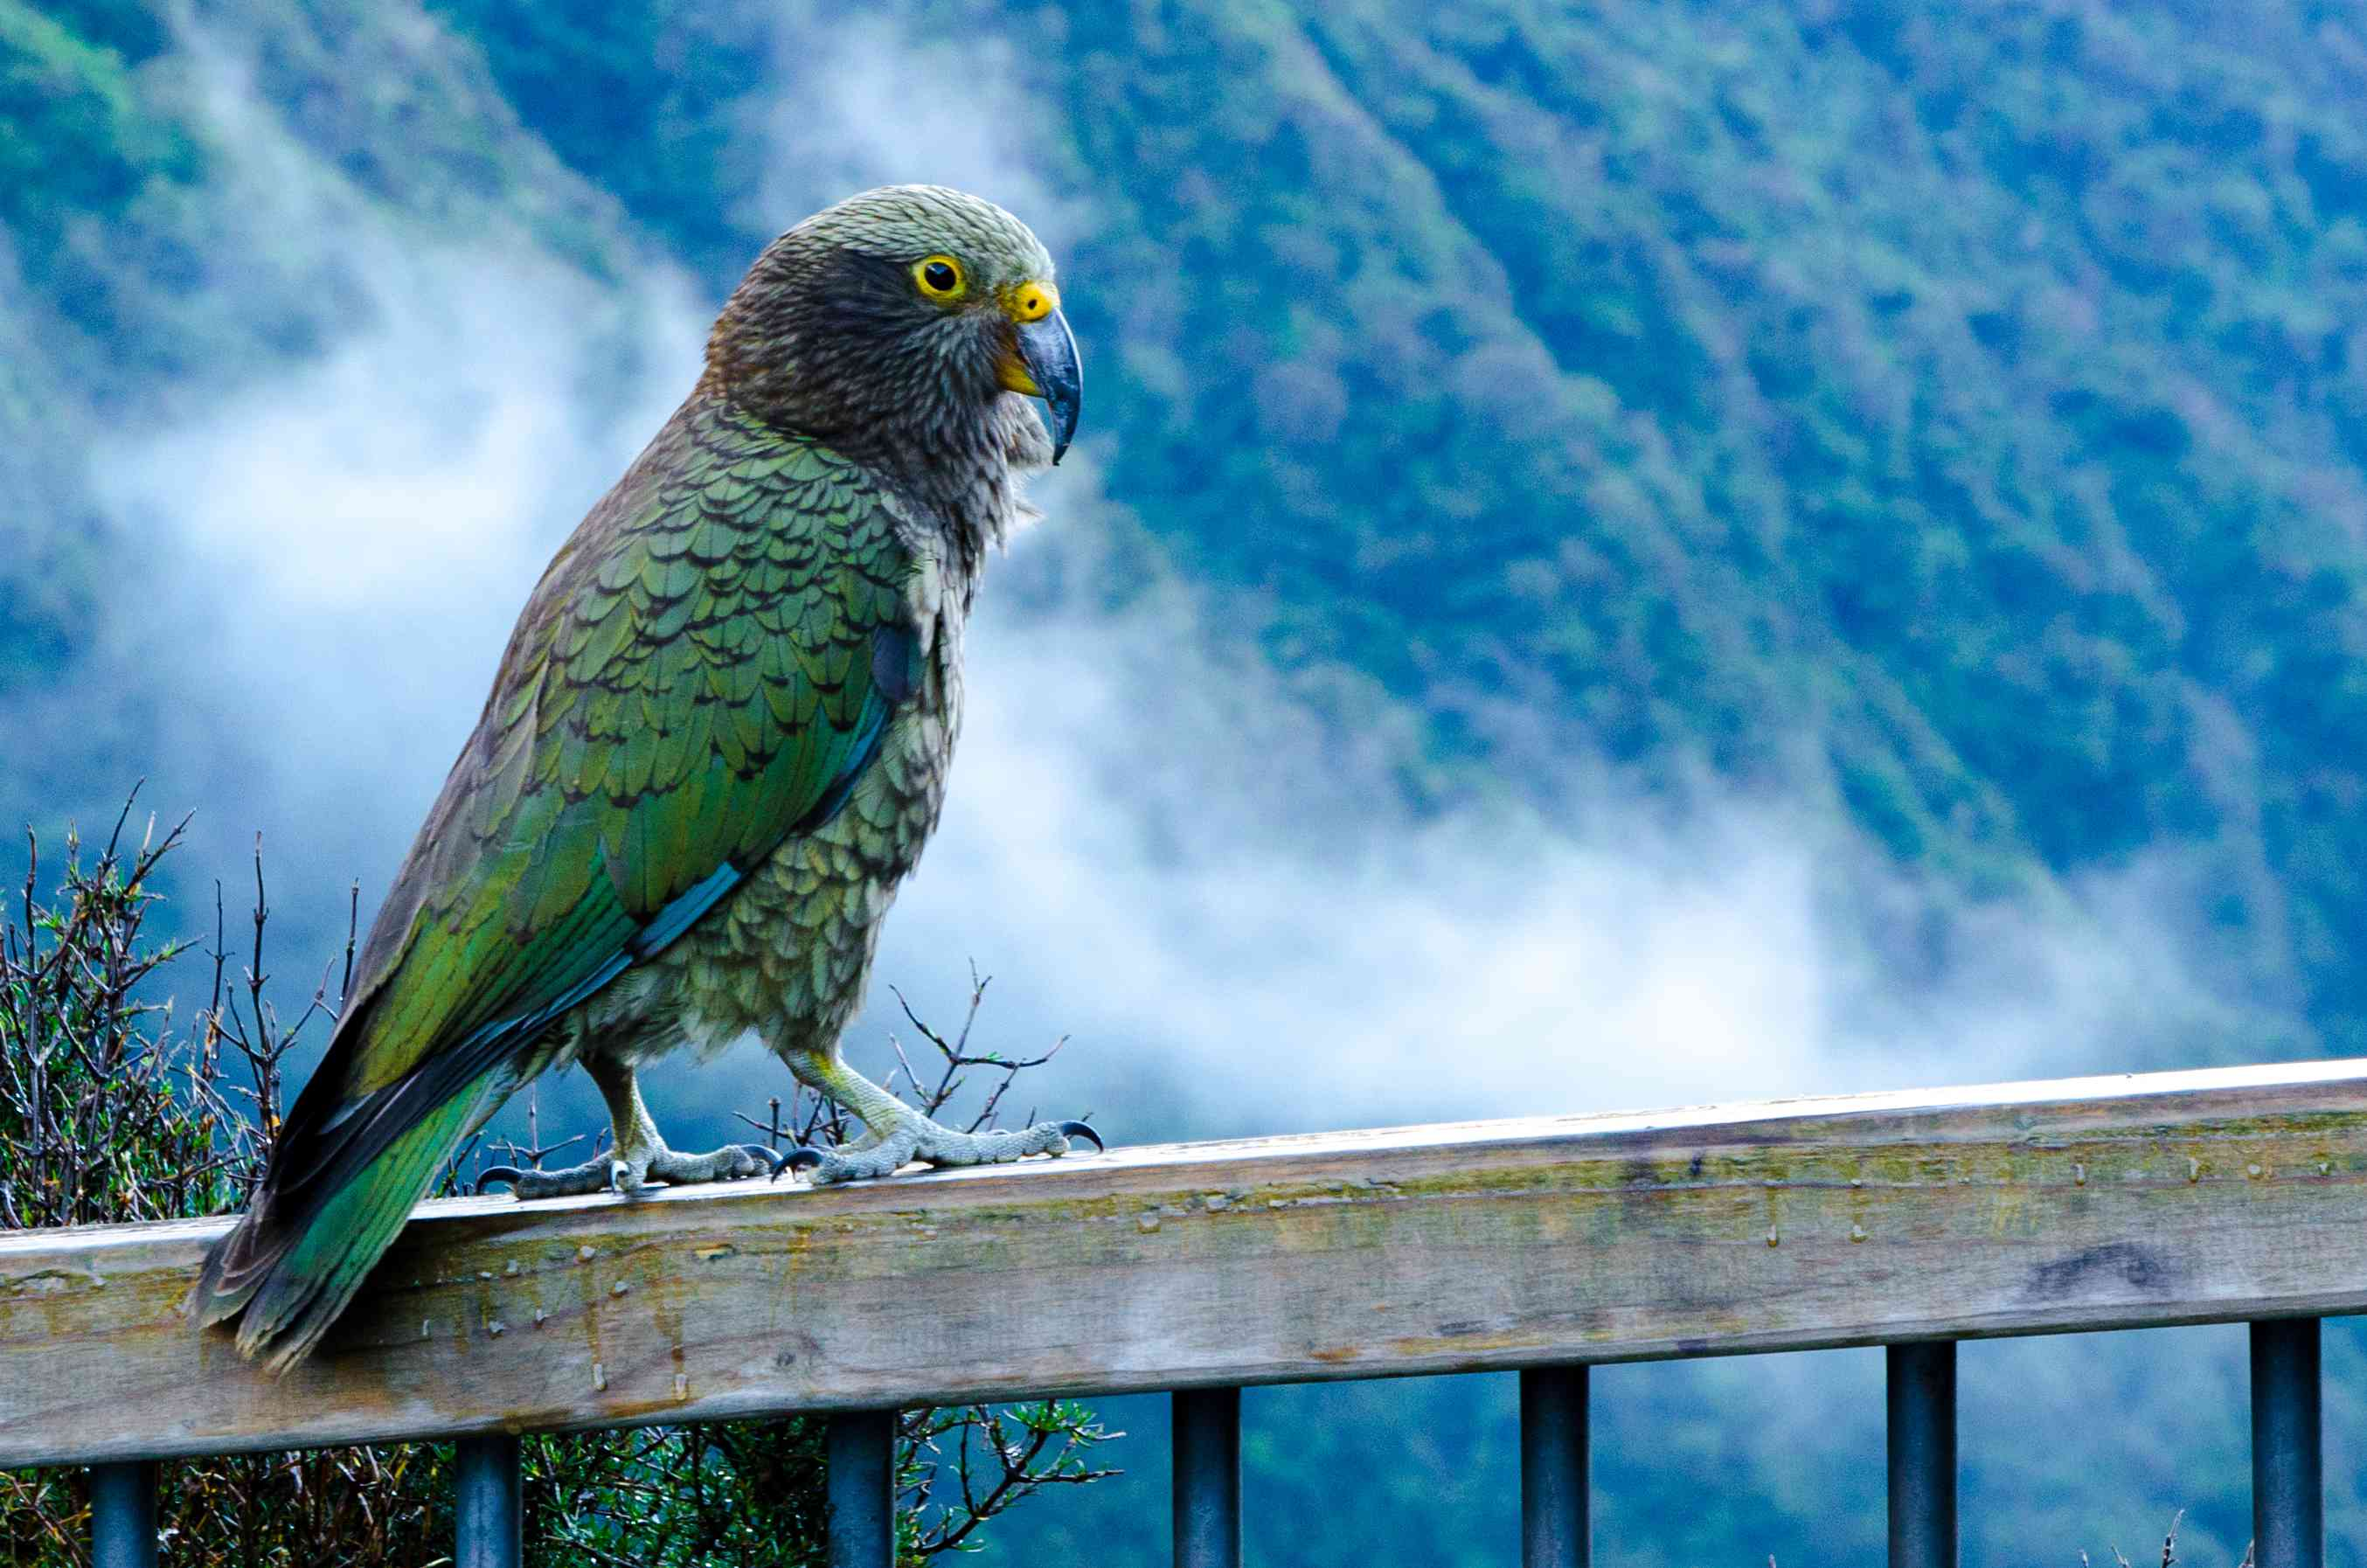 green bird with hooked beak sitting on a fence with mist and forest in background